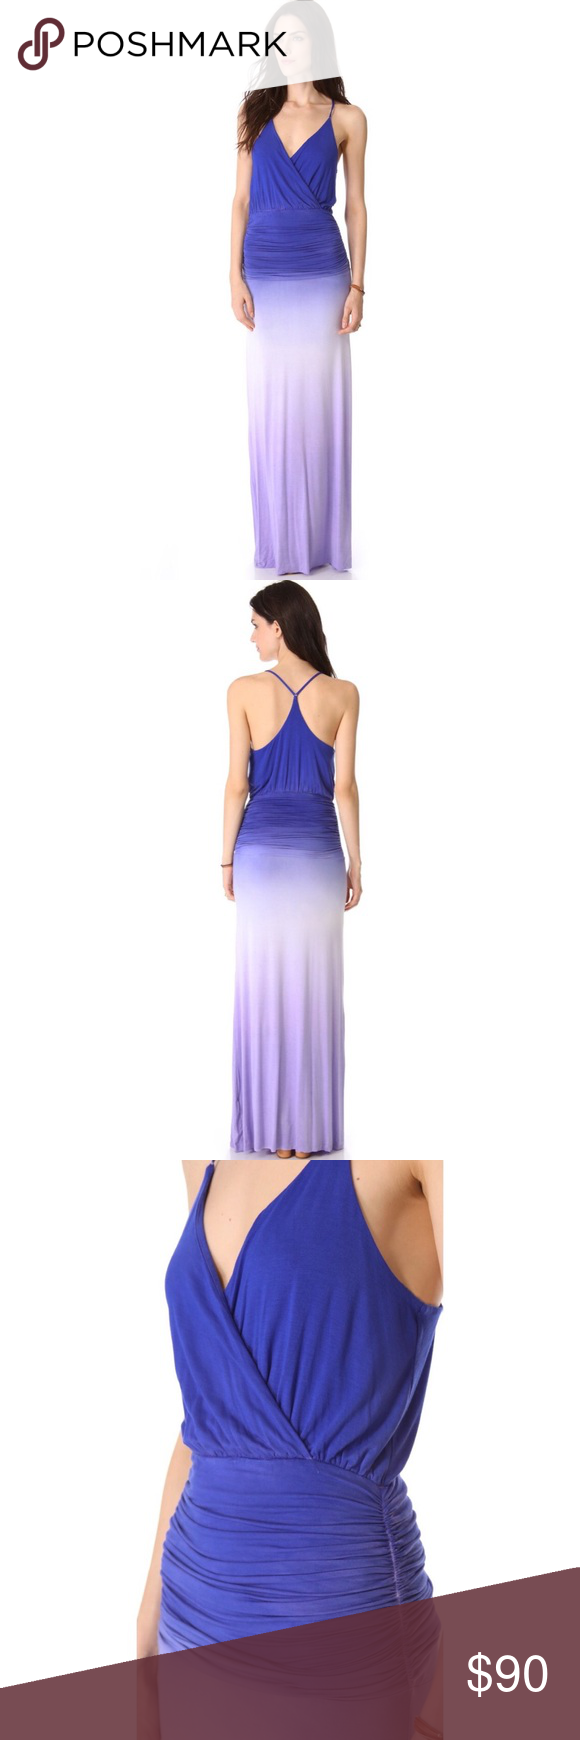 Young Fabulous & Broke Maxi Dress Beautiful ombré maxi dress! Size medium but fits more like a small. Stunning color and amazing quality dress! Worn once! Young Fabulous & Broke Dresses Maxi